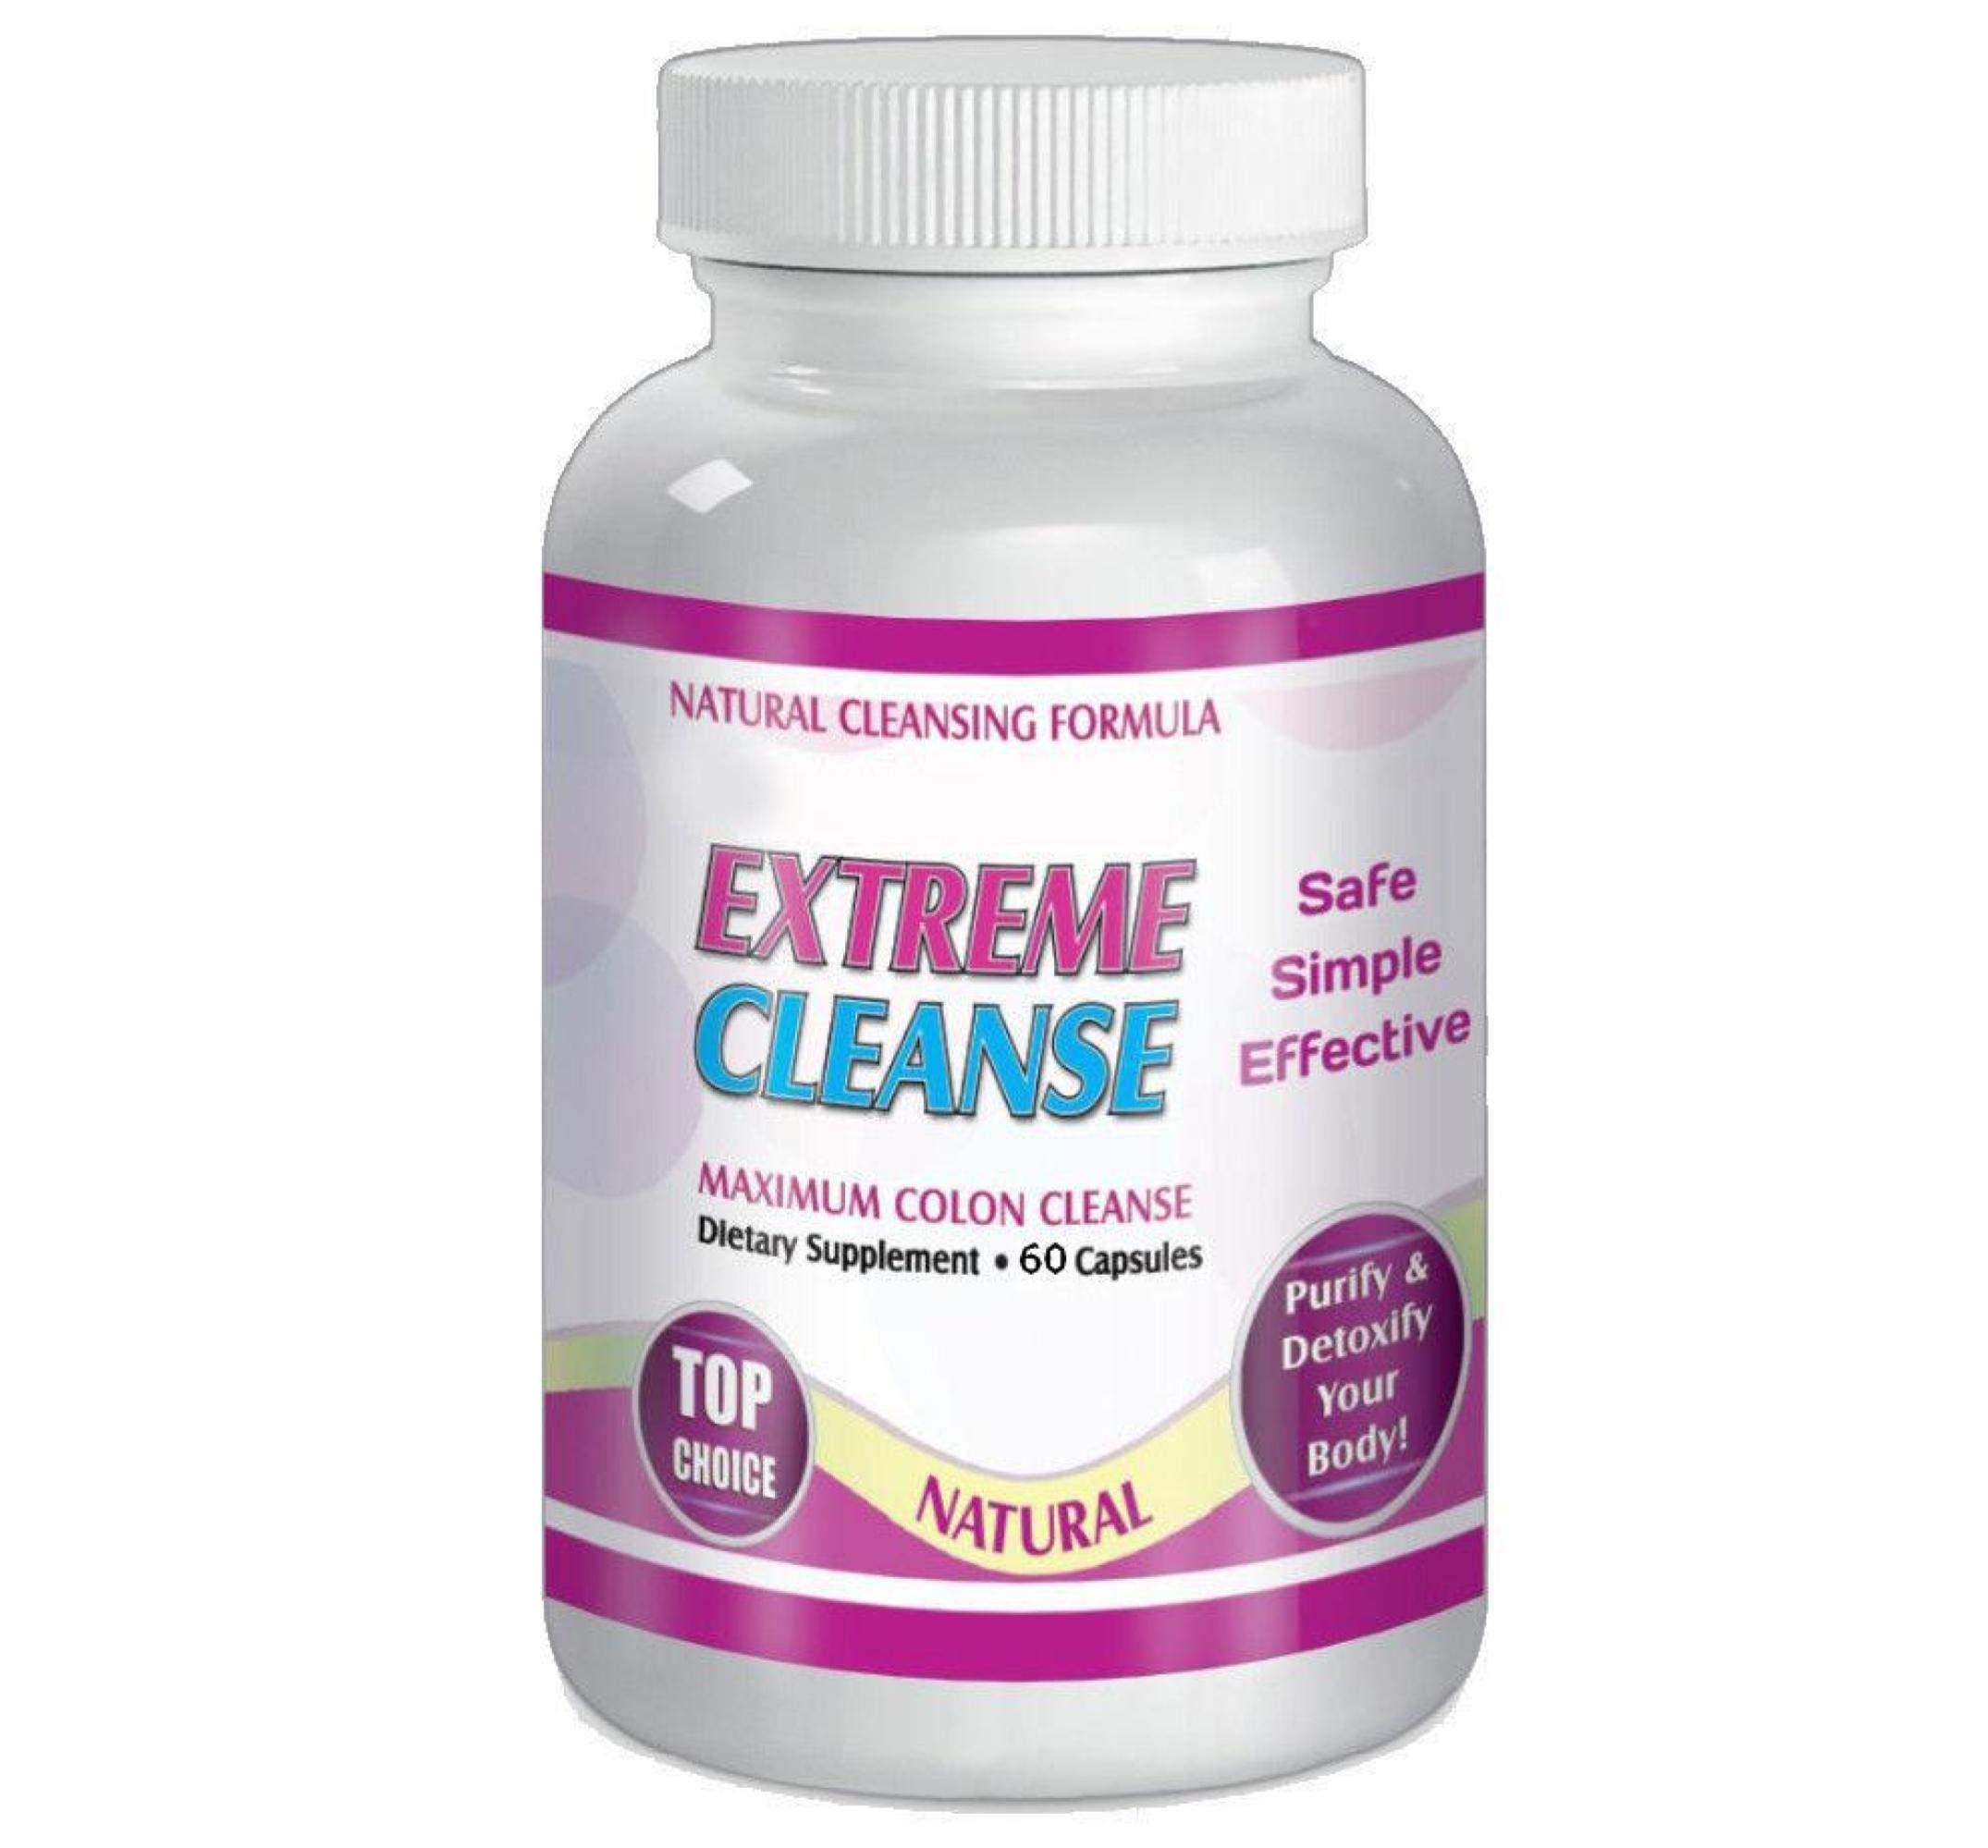 Extreme Cleanse Maximum Colon Control by Extreme